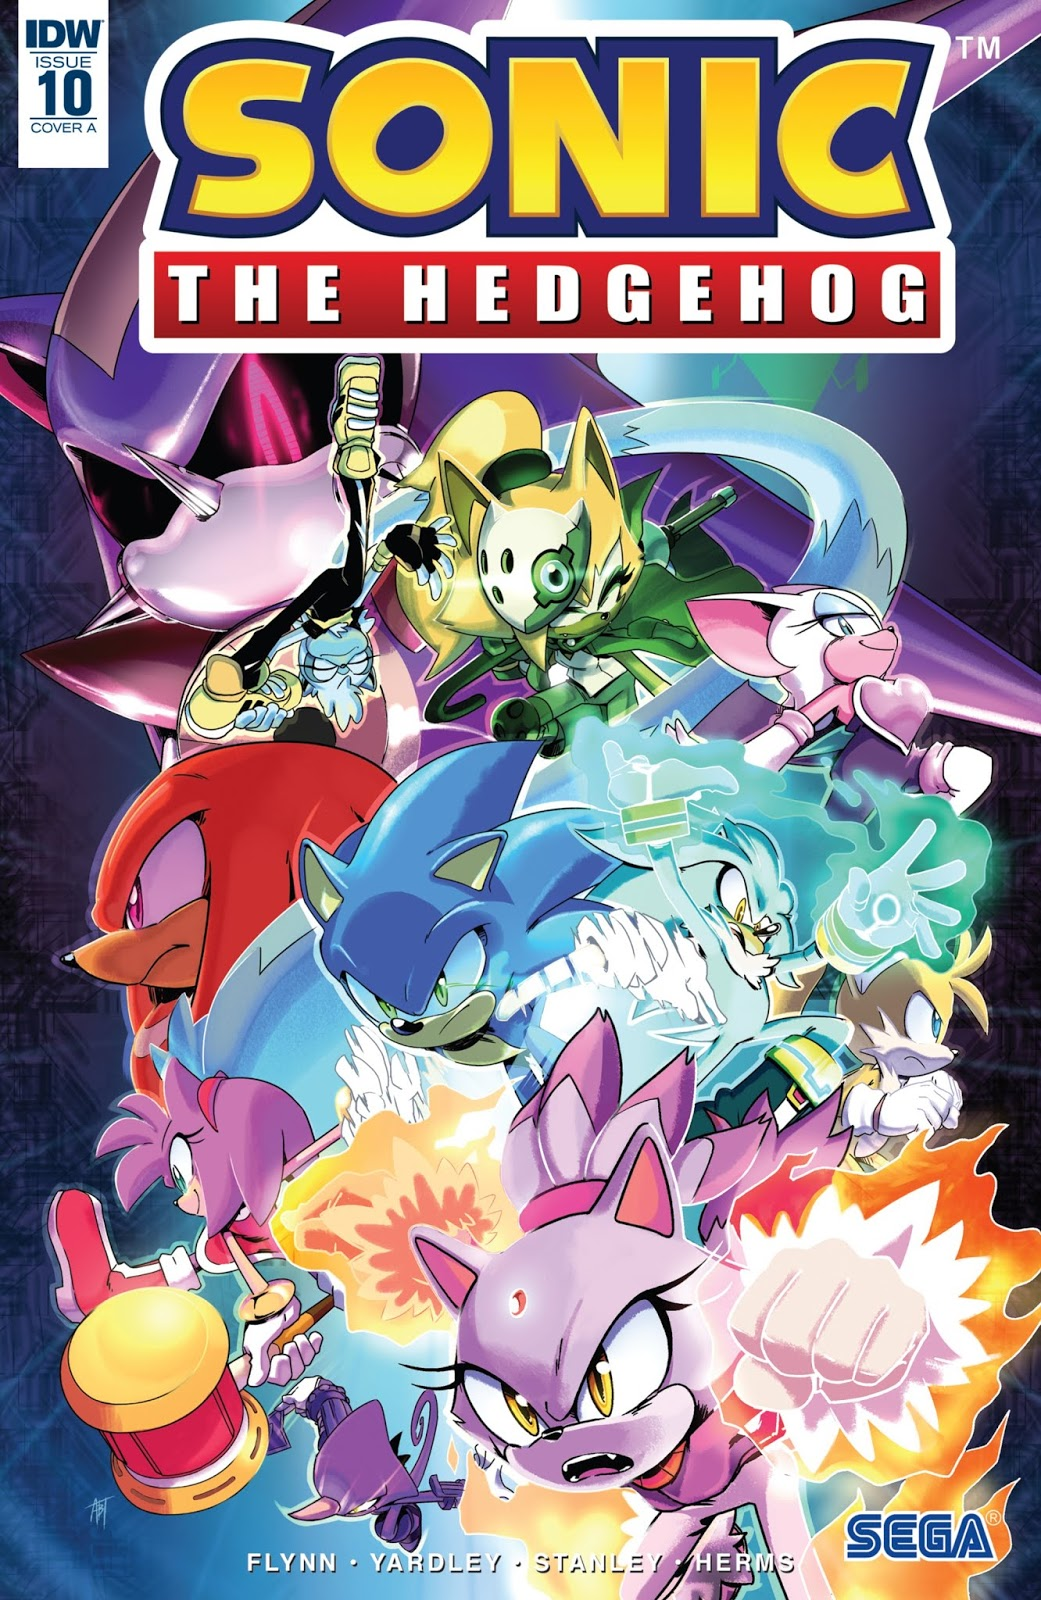 Hedgehogs Can T Swim Sonic The Hedgehog Idw Issue 10